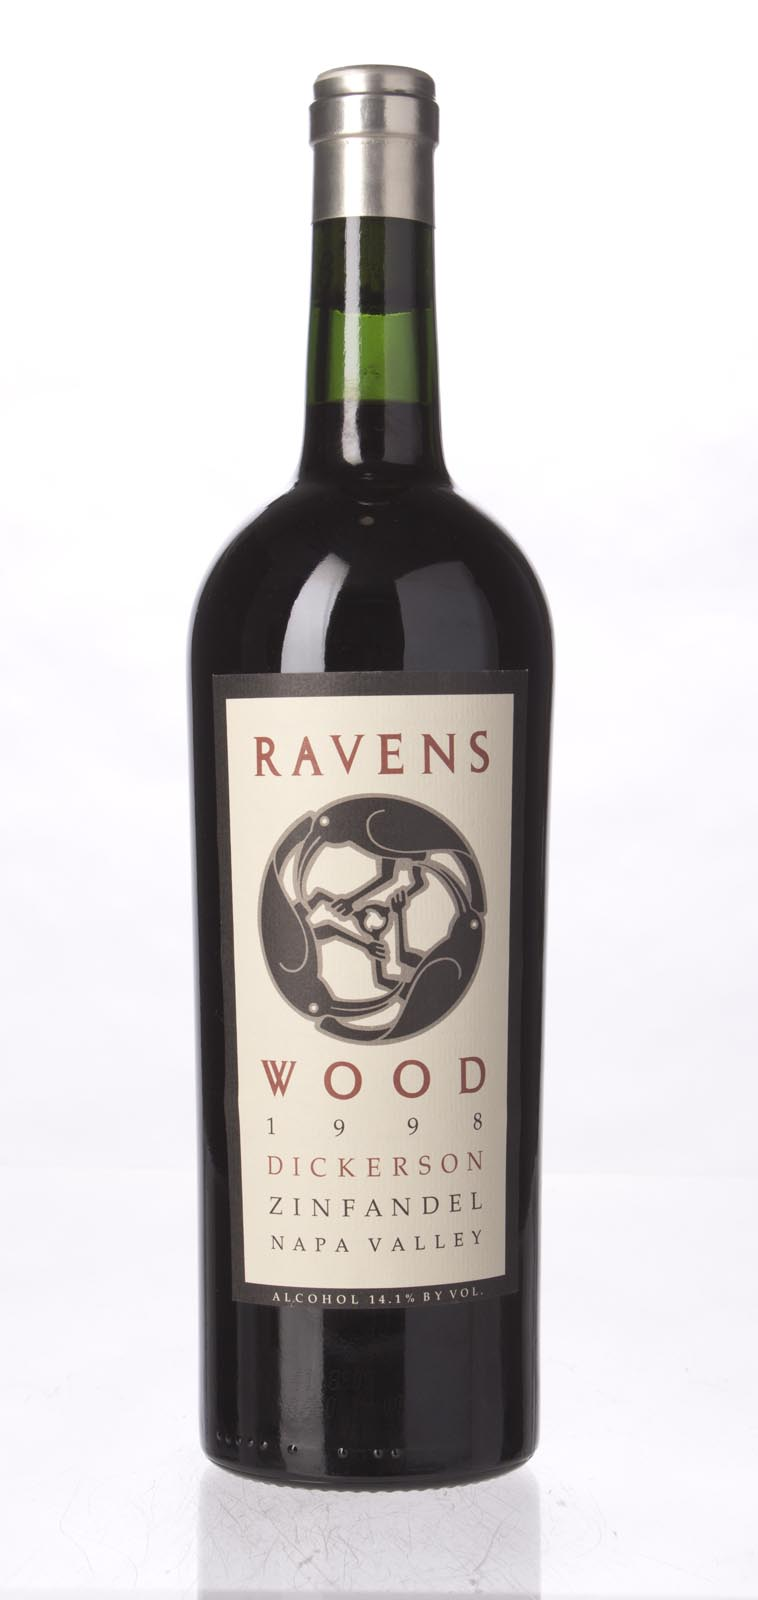 Ravenswood Zinfandel Dickerson Vineyard 1998, 750mL () from The BPW - Merchants of rare and fine wines.